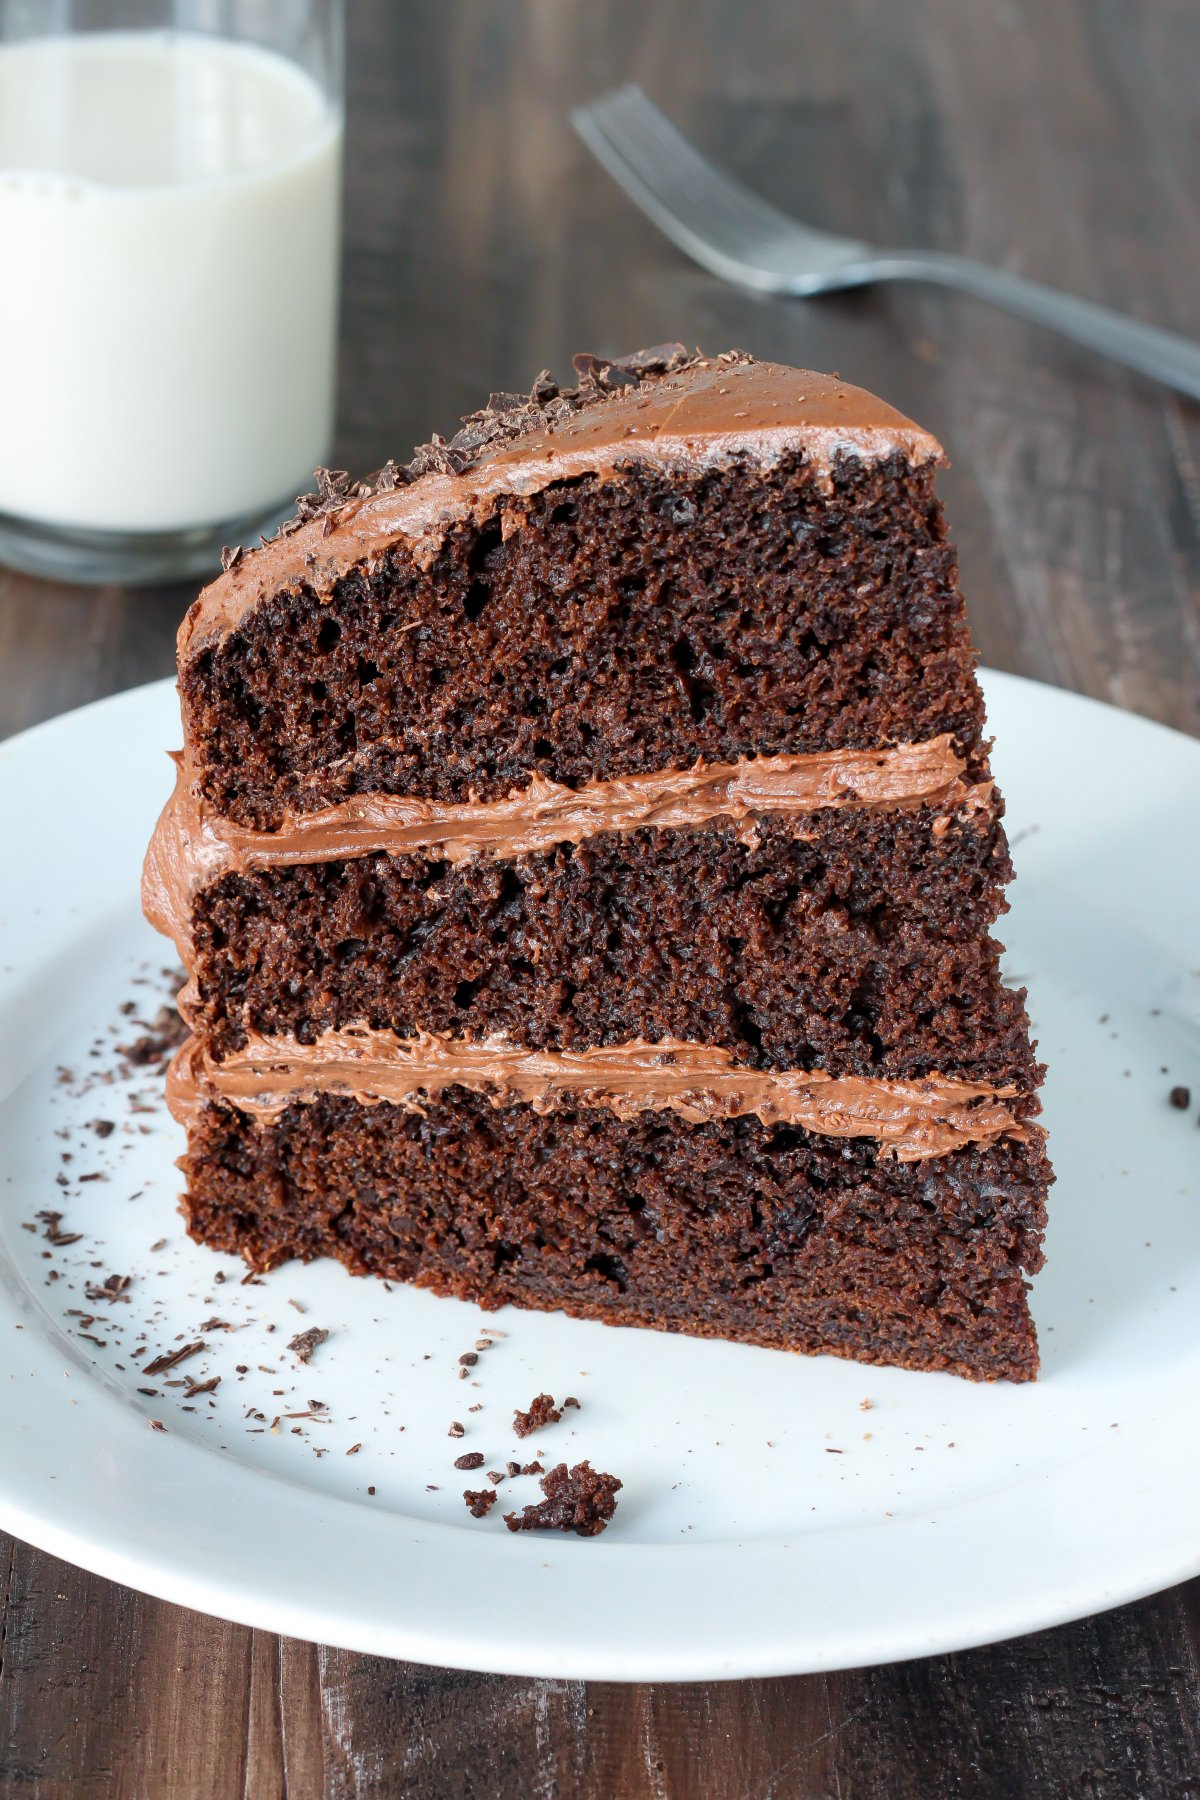 How To Make A Light Fluffy Chocolate Cake